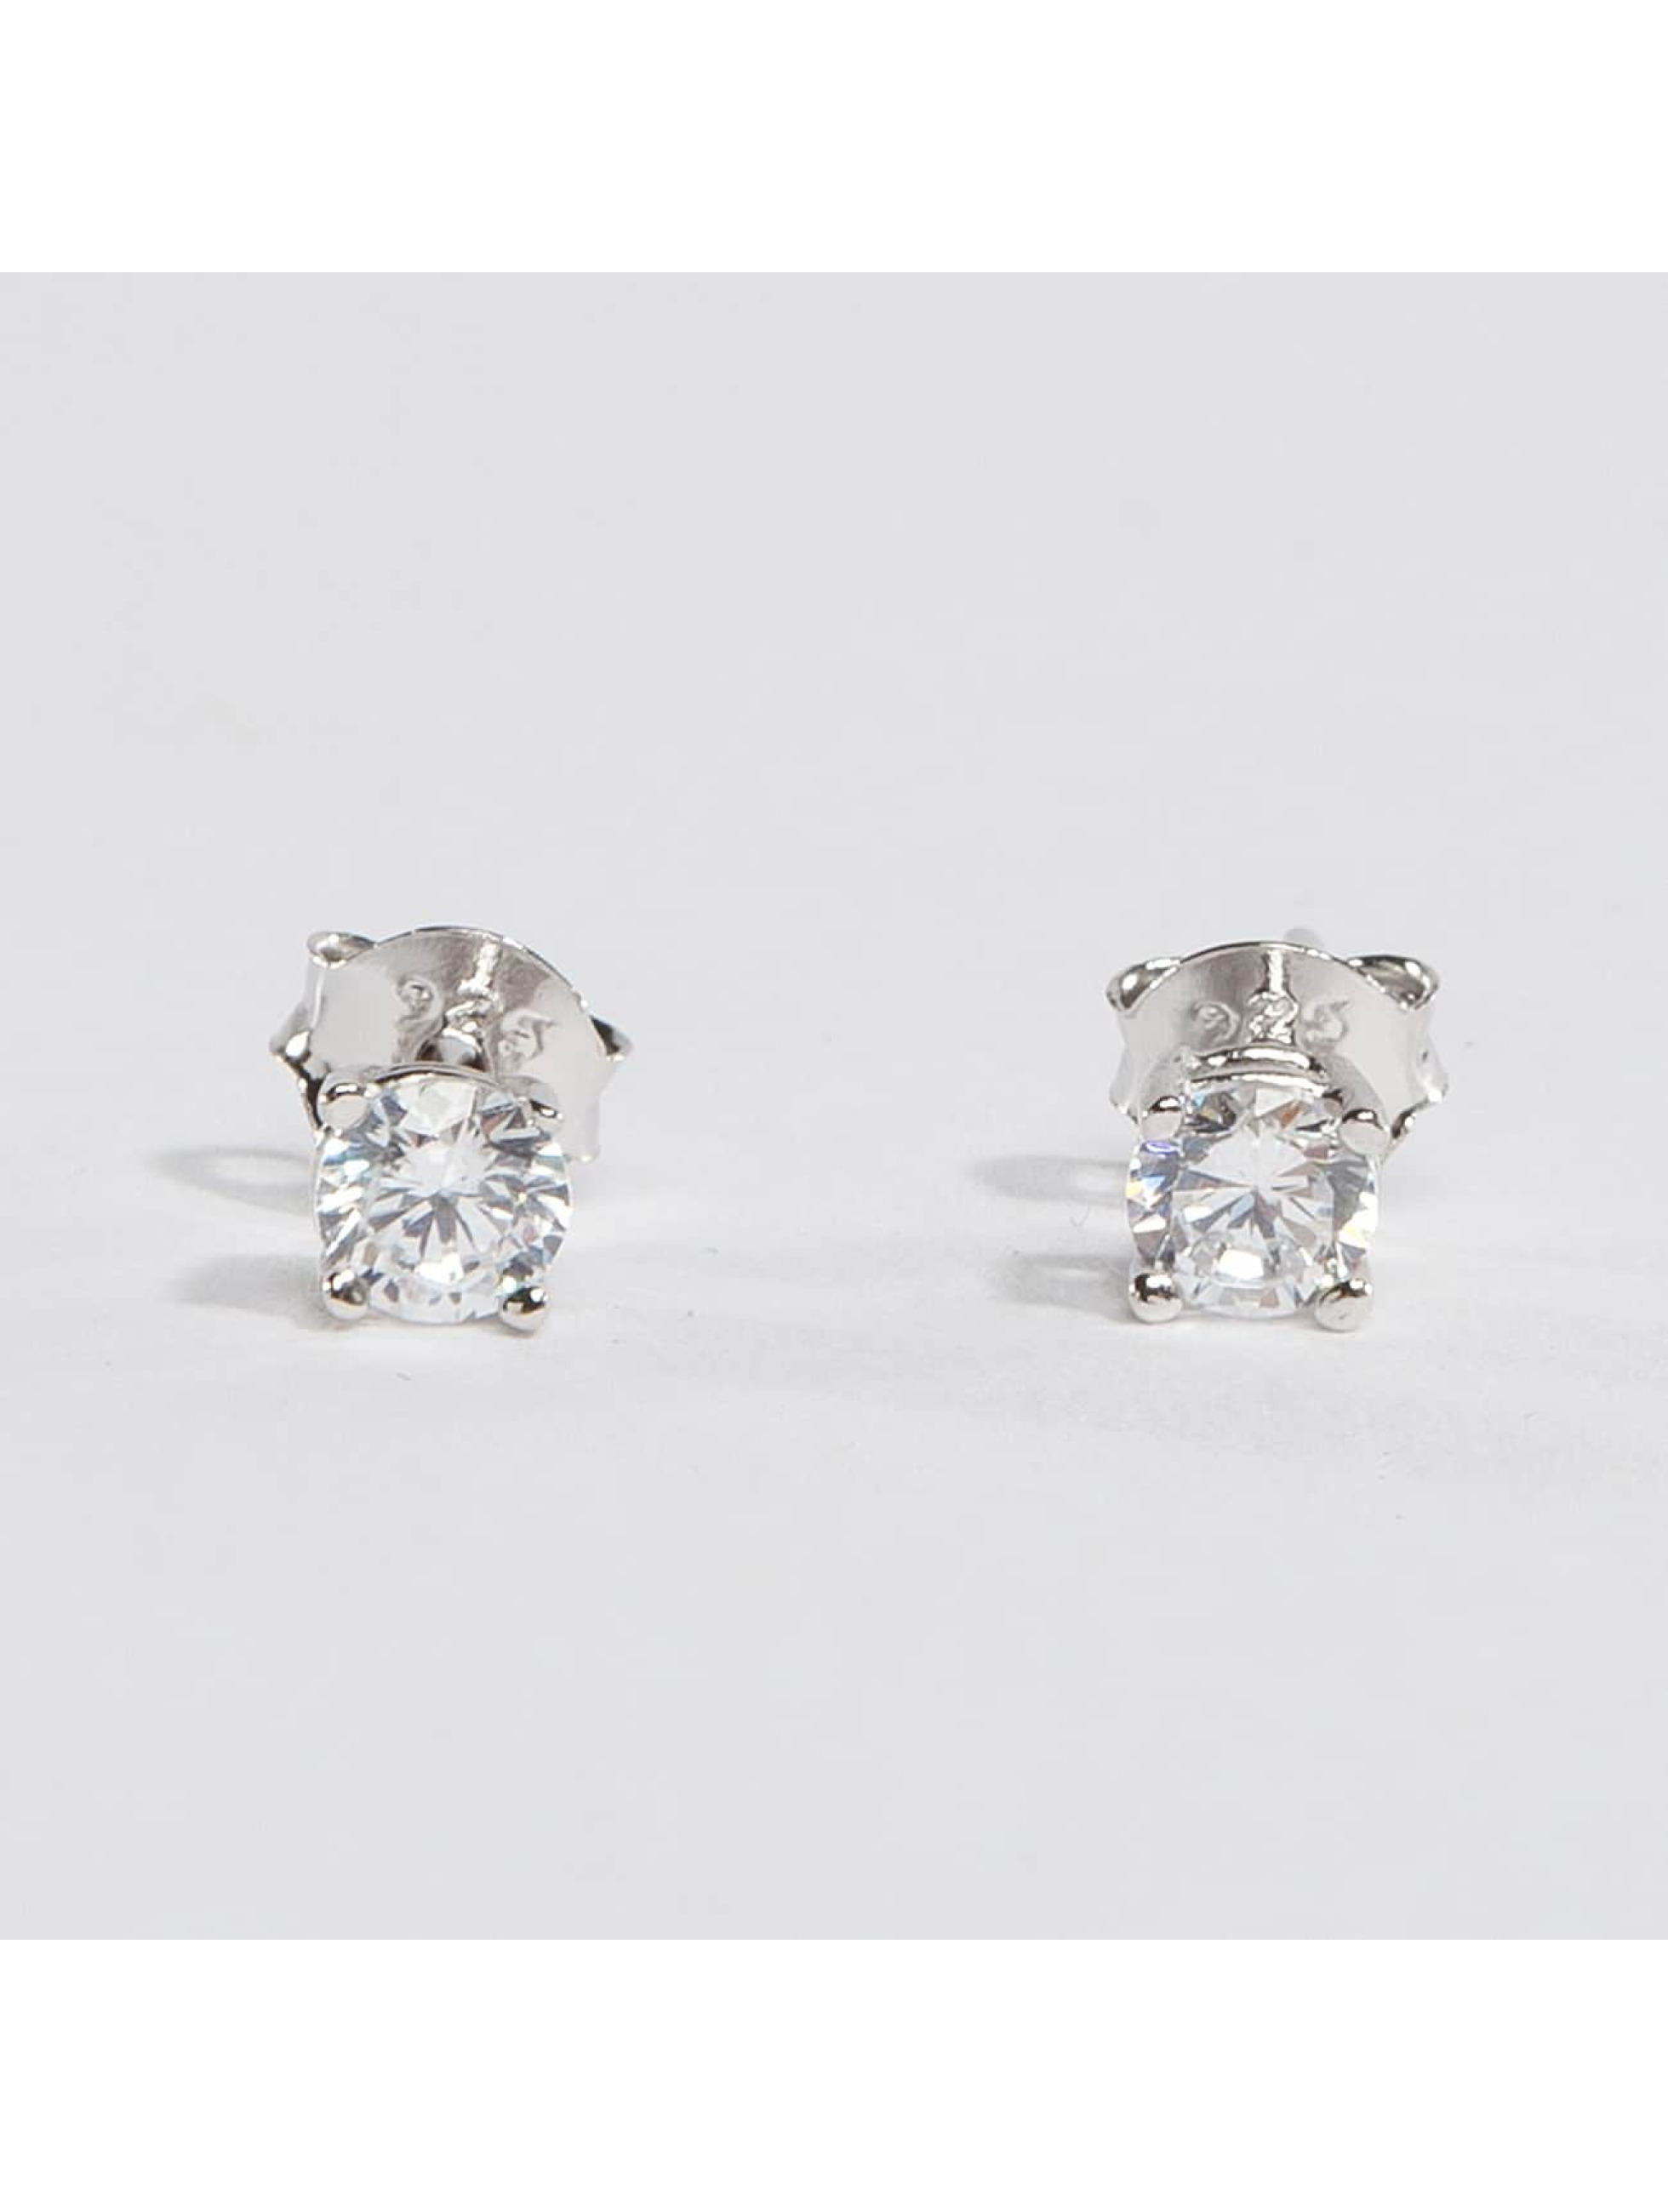 KING ICE Earring Rhodium_Plated 4mm 925 Sterling_Silver CZ silver